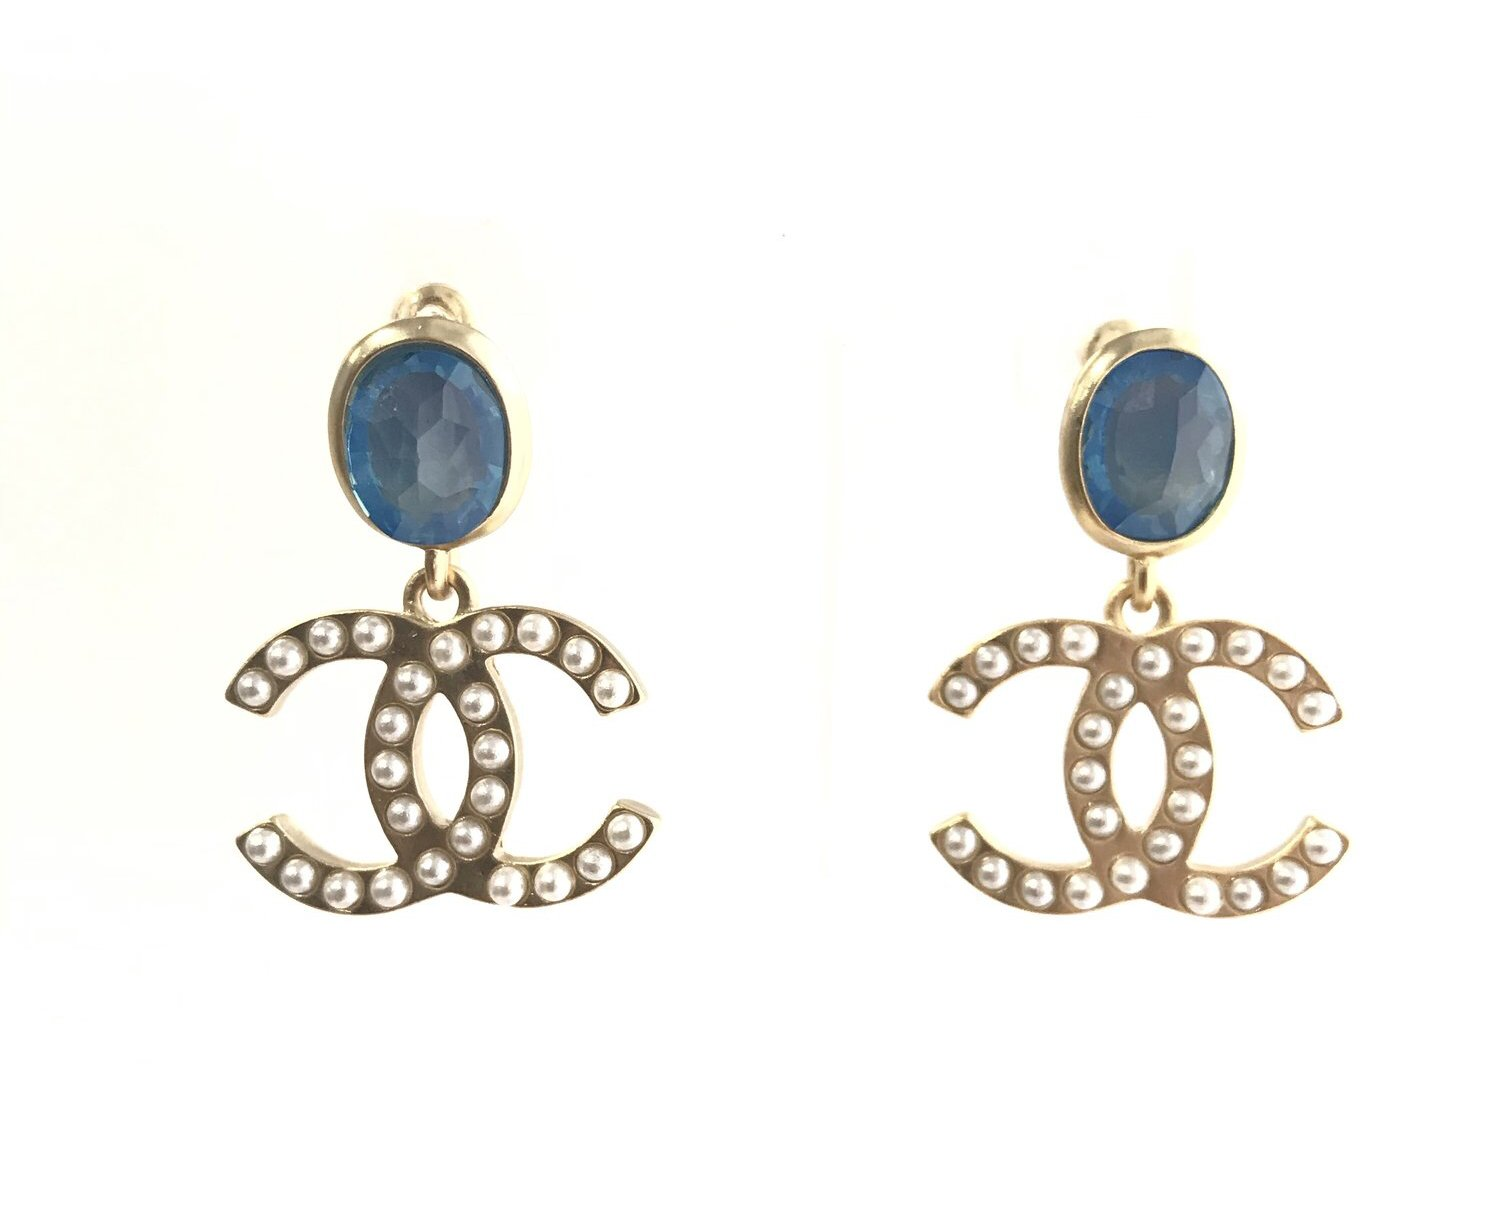 CHANEL CC LOGO EARRINGS BLUE STONE DANGLE